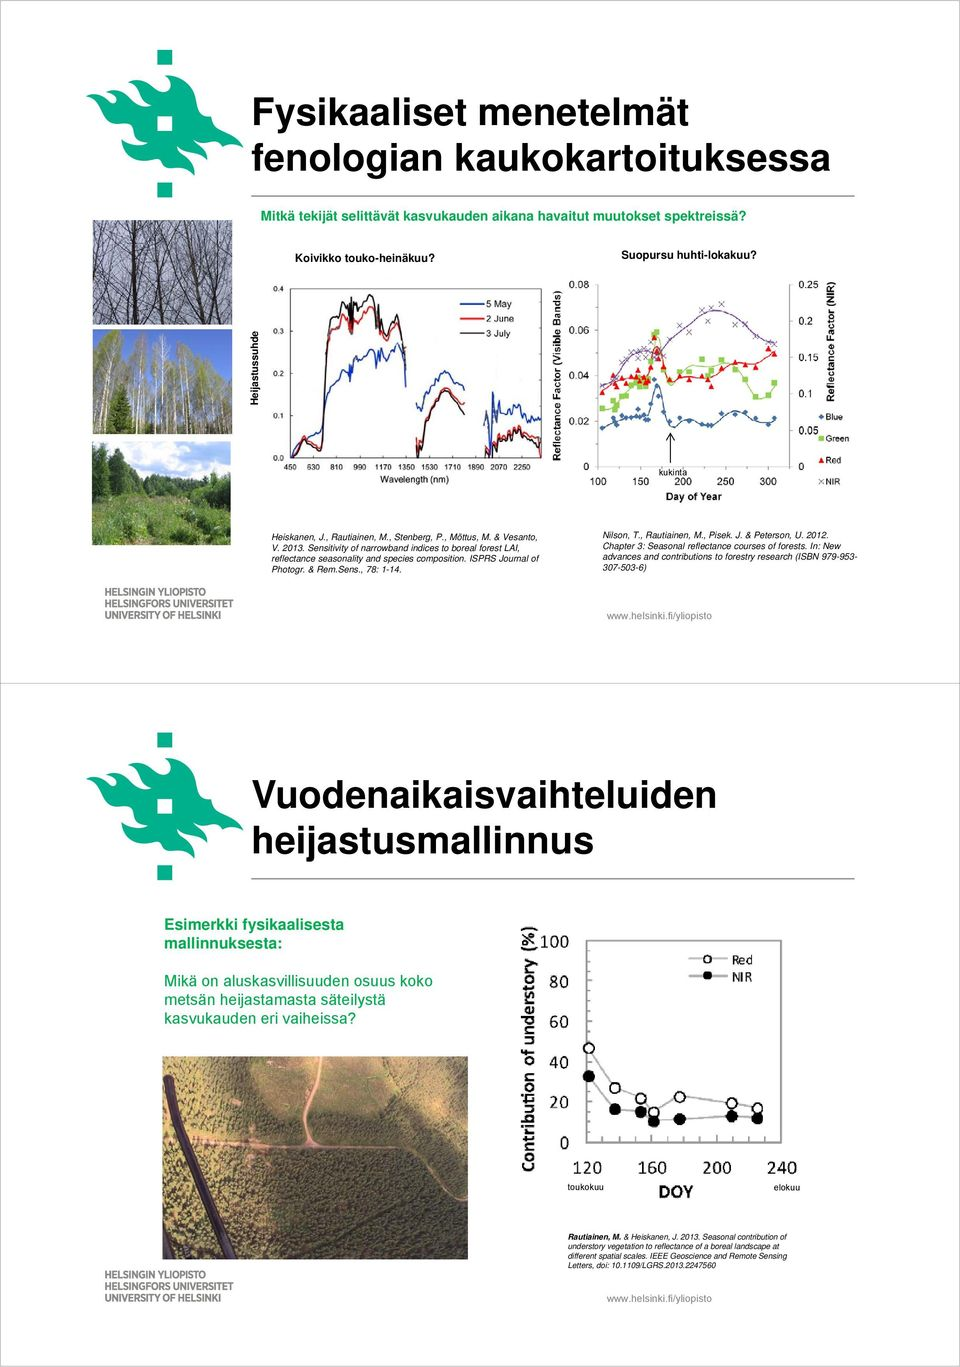 Sensitivity of narrowband indices to boreal forest LAI, reflectance seasonality and species composition. ISPRS Journal of Photogr. & Rem.Sens., 78: 1-14. Nilson, T., Rautiainen, M., Pisek. J. & Peterson, U.